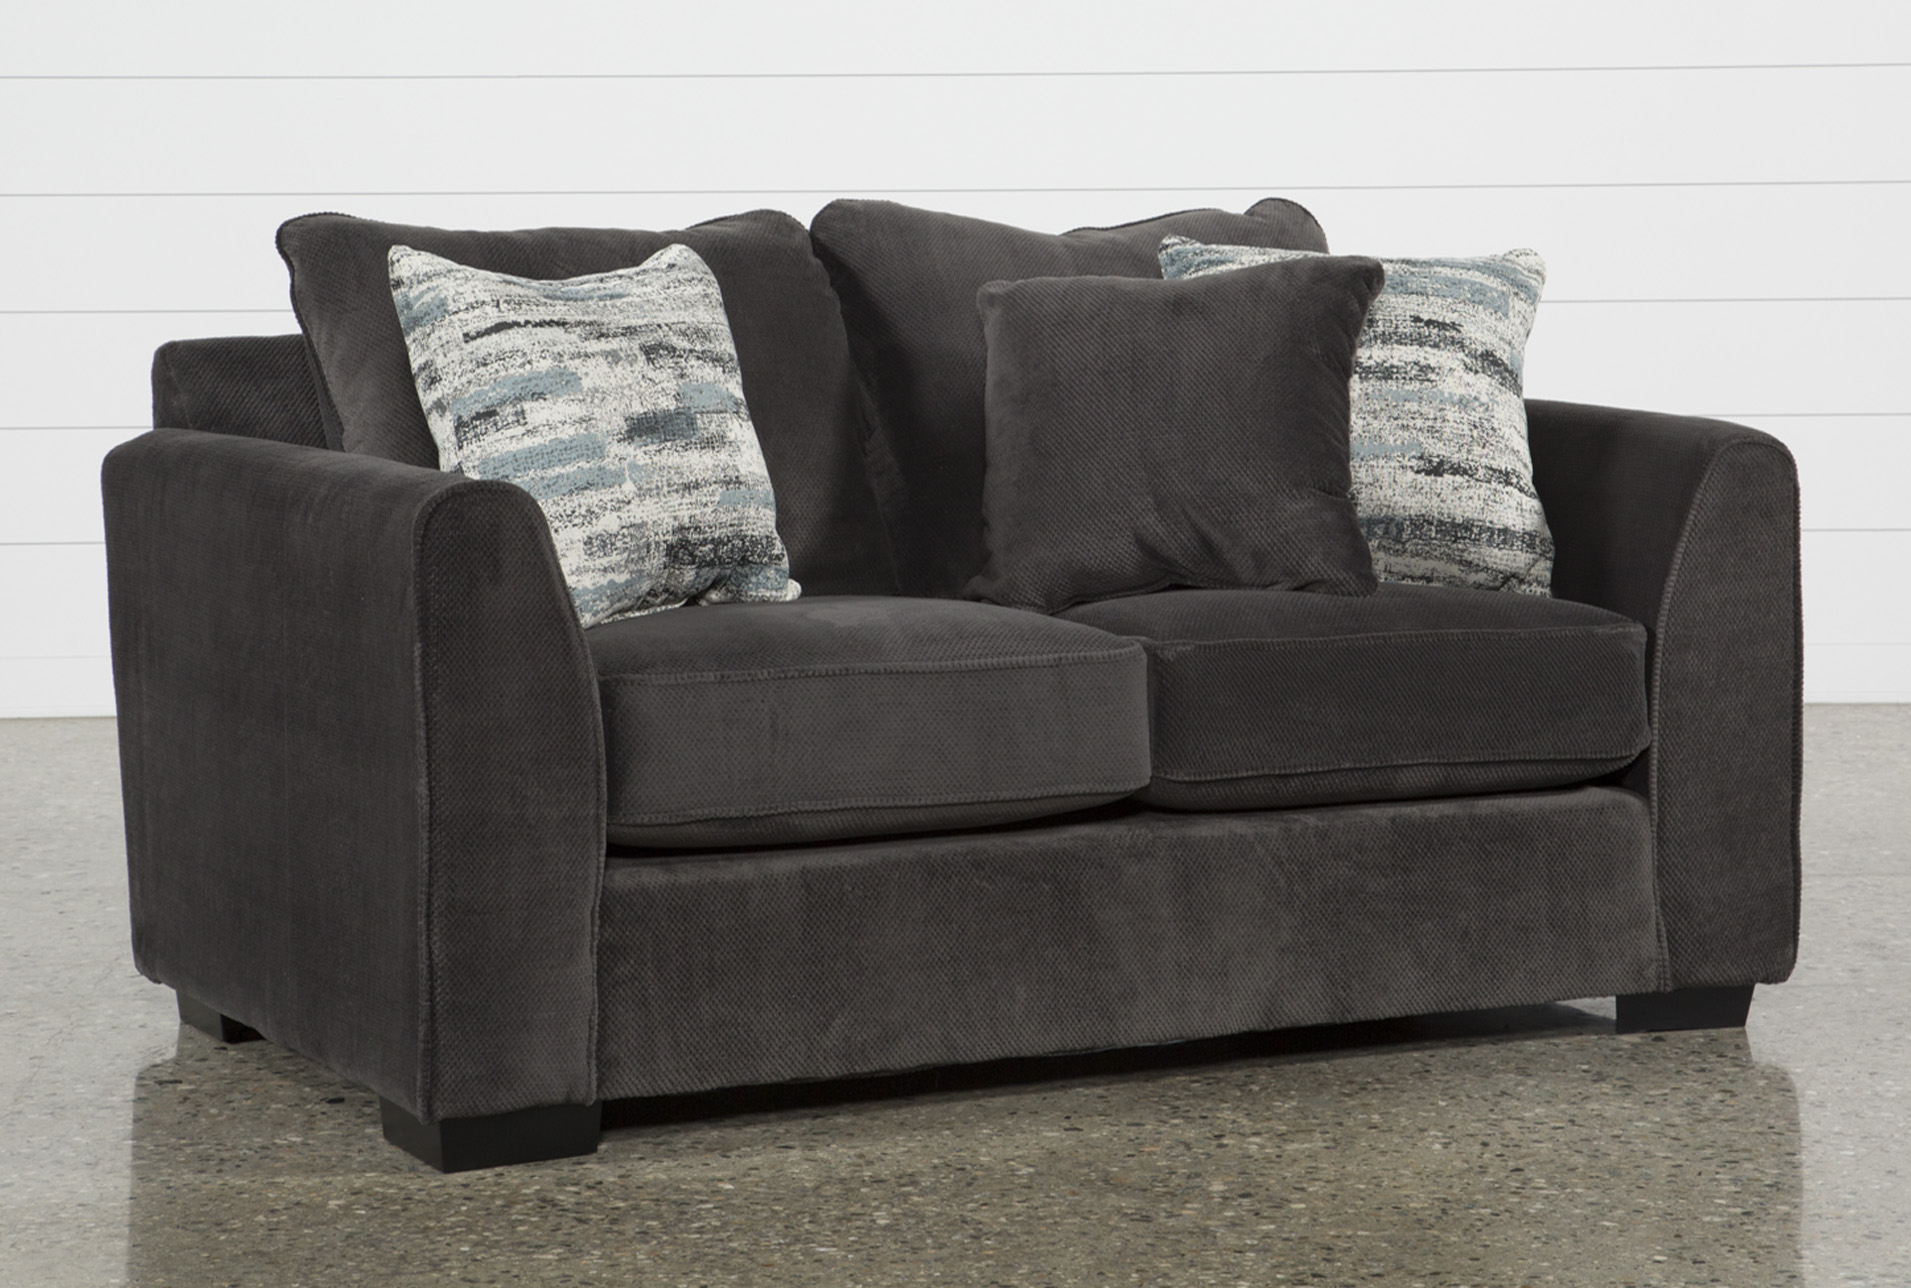 Sheldon Loveseat (Qty: 1) Has Been Successfully Added To Your Cart.